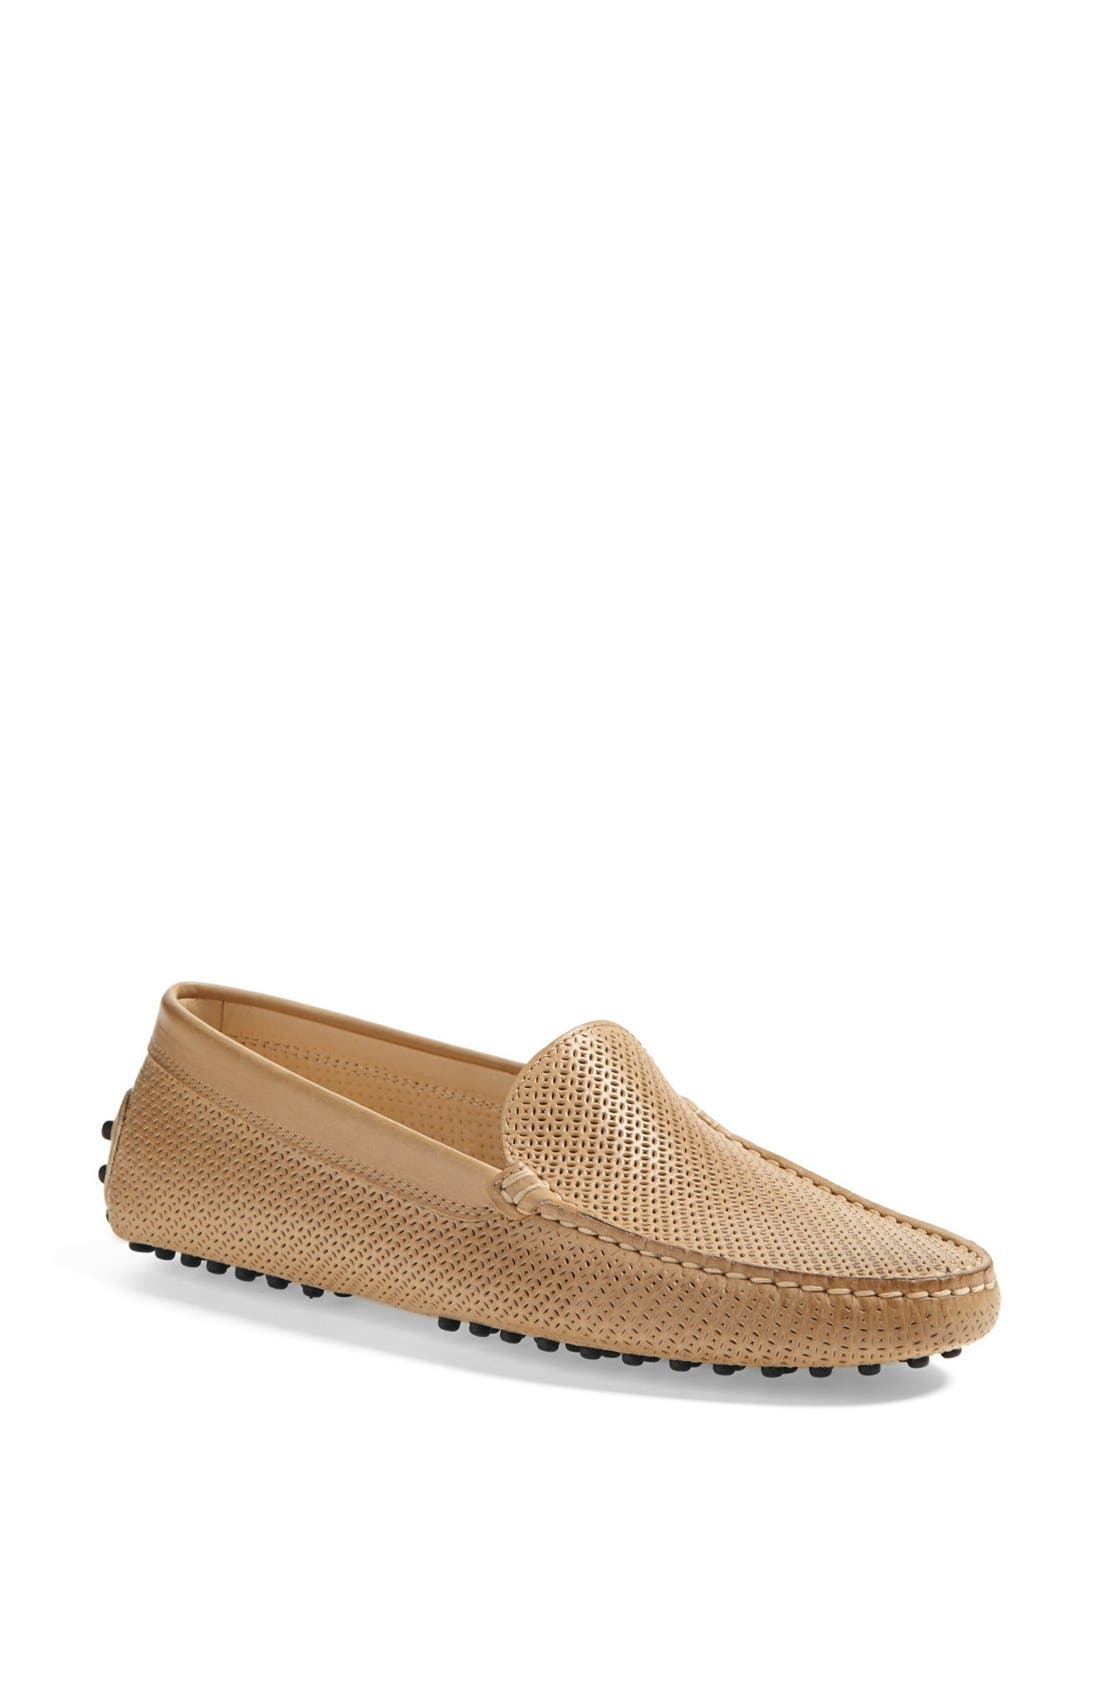 Main Image - Tod's 'Gommini' Perforated Leather Driving Moccasin